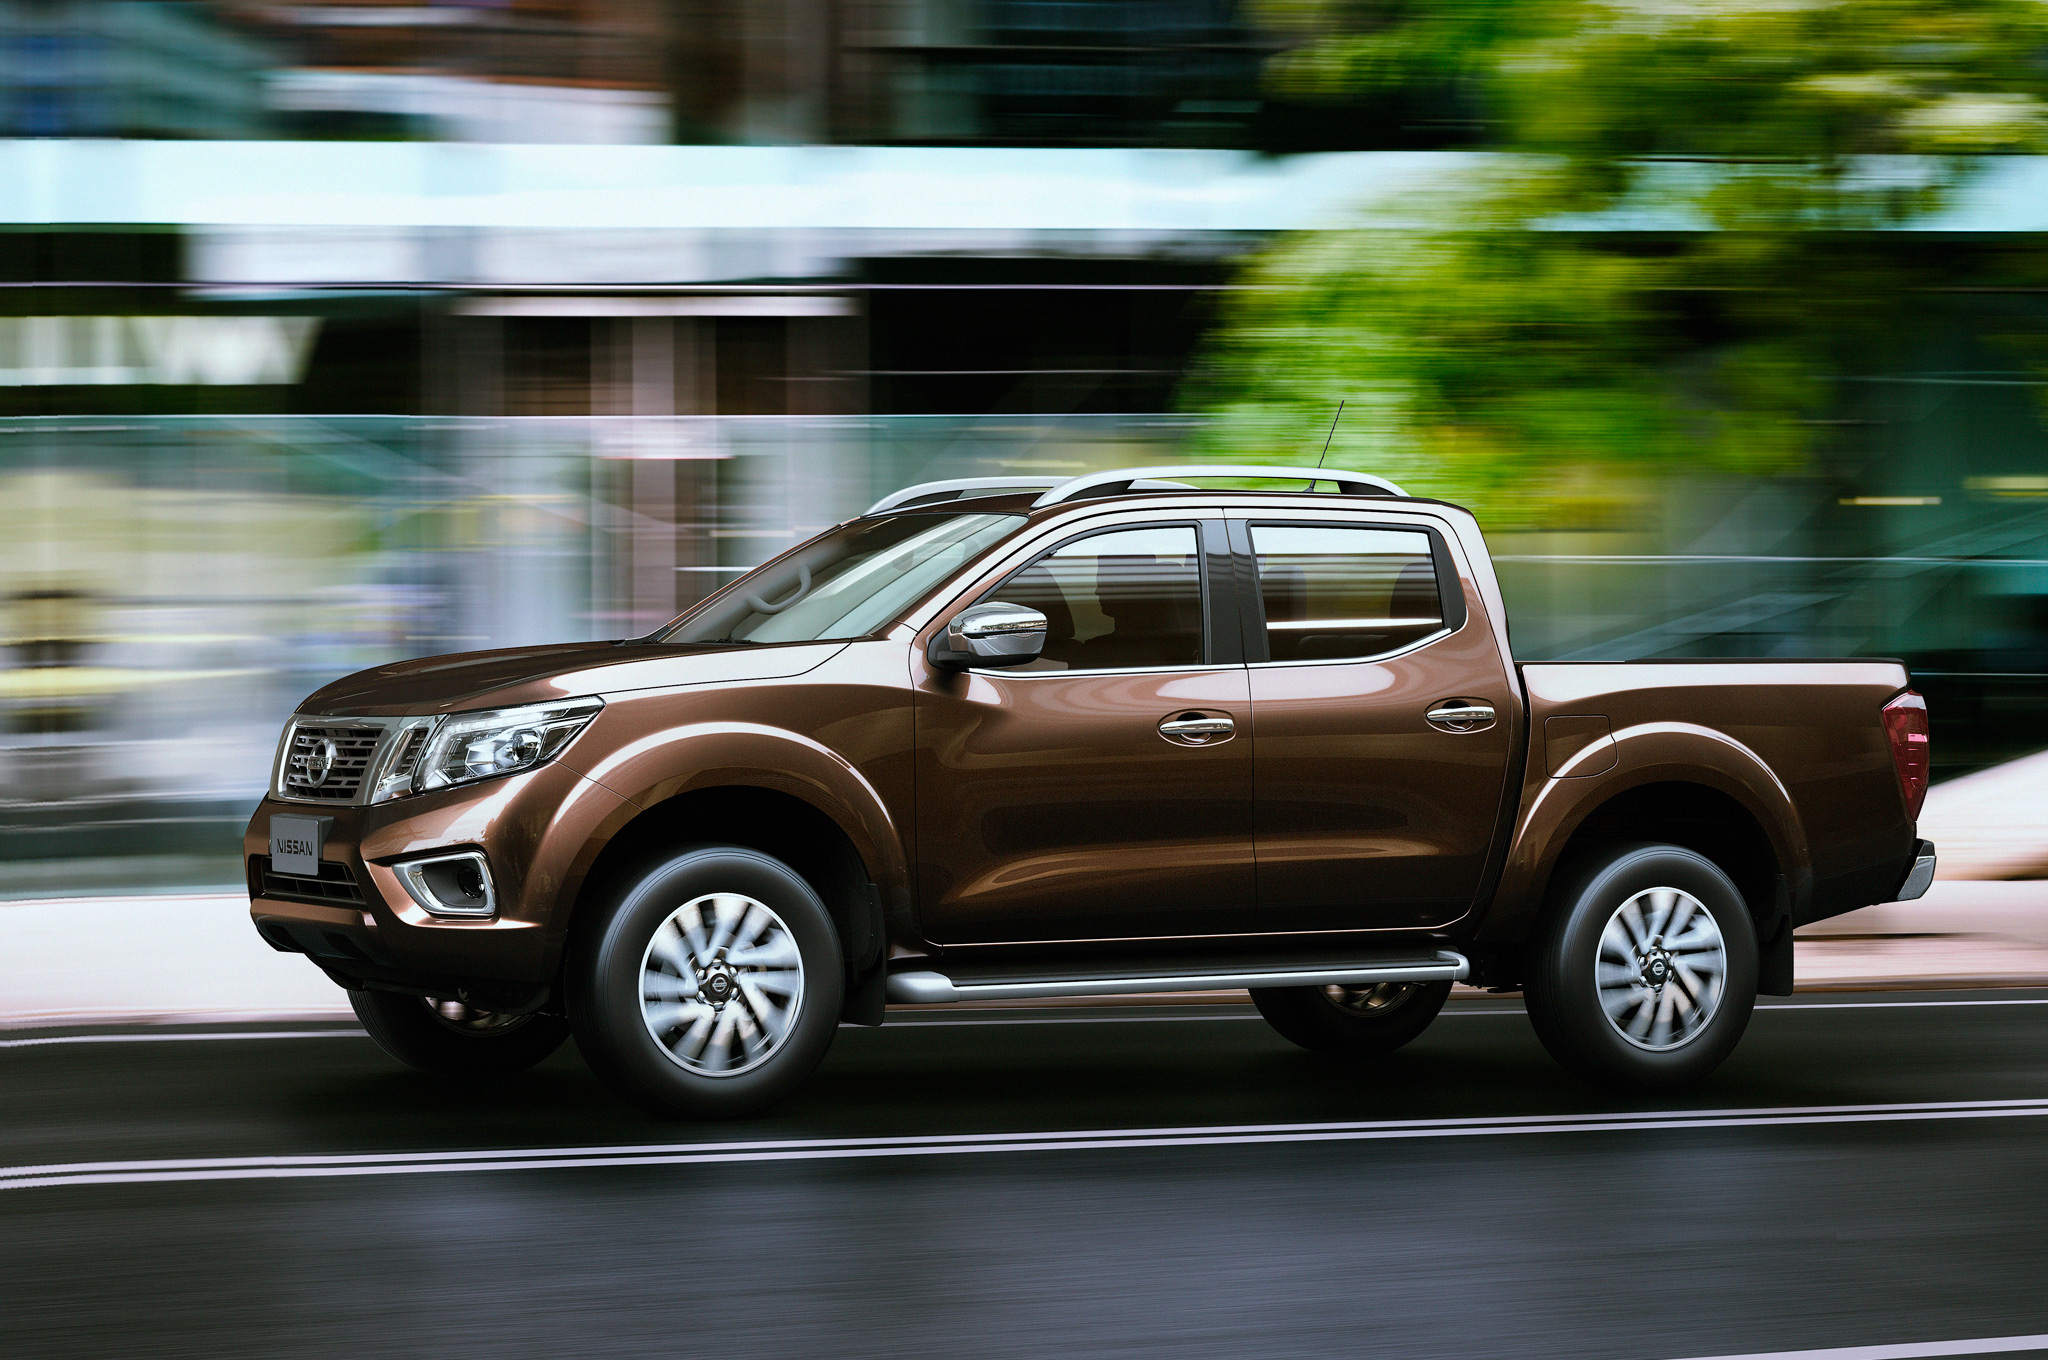 Nissan-NP300-Navara-12th-gen-Double-Cab-side-motion-view